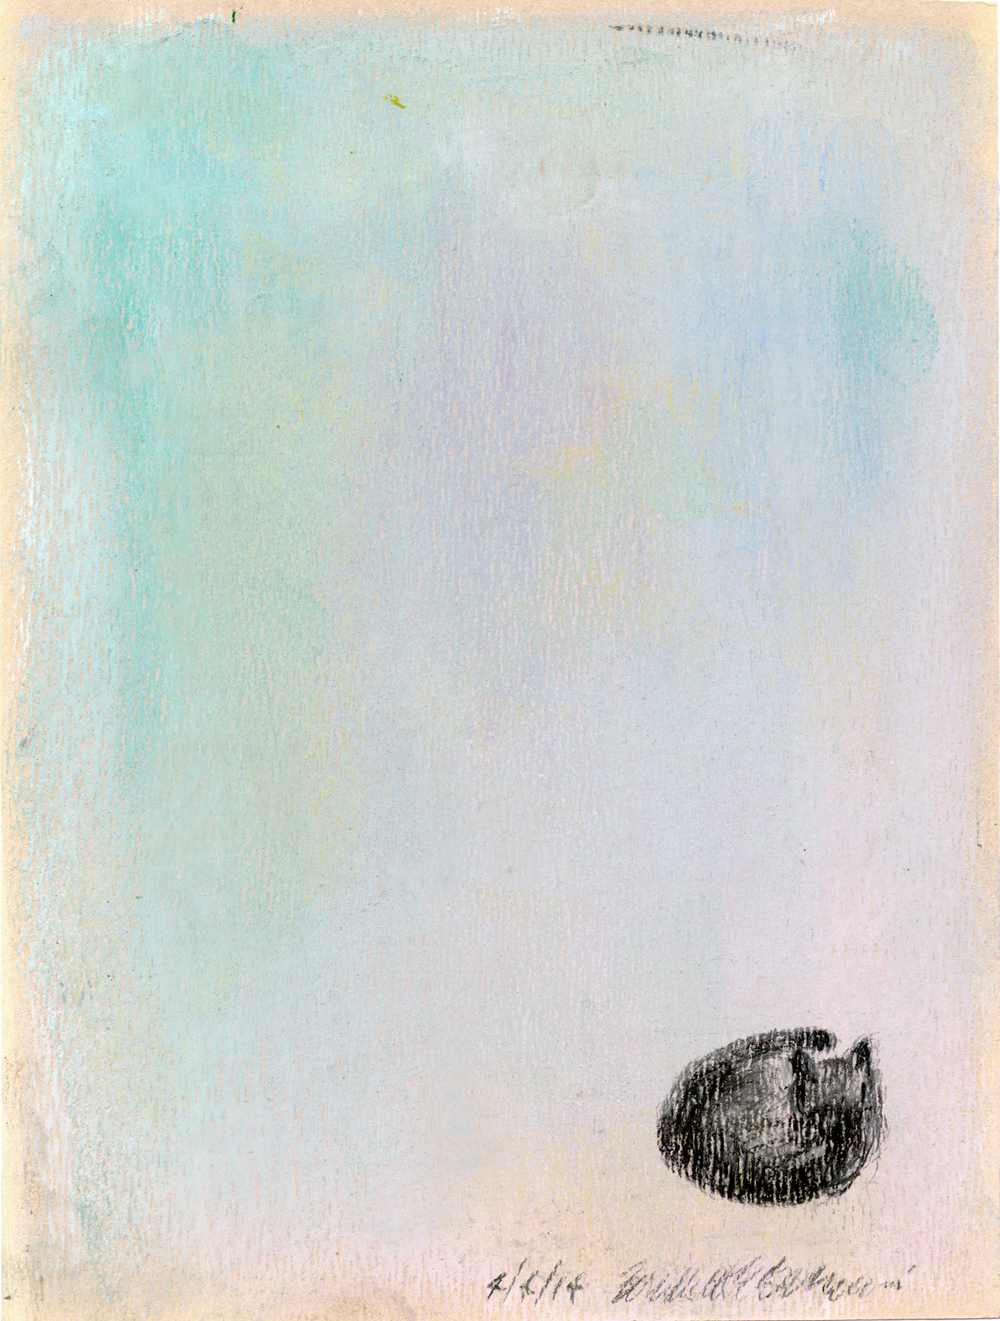 pastel sketch of samall black cat on pastel background